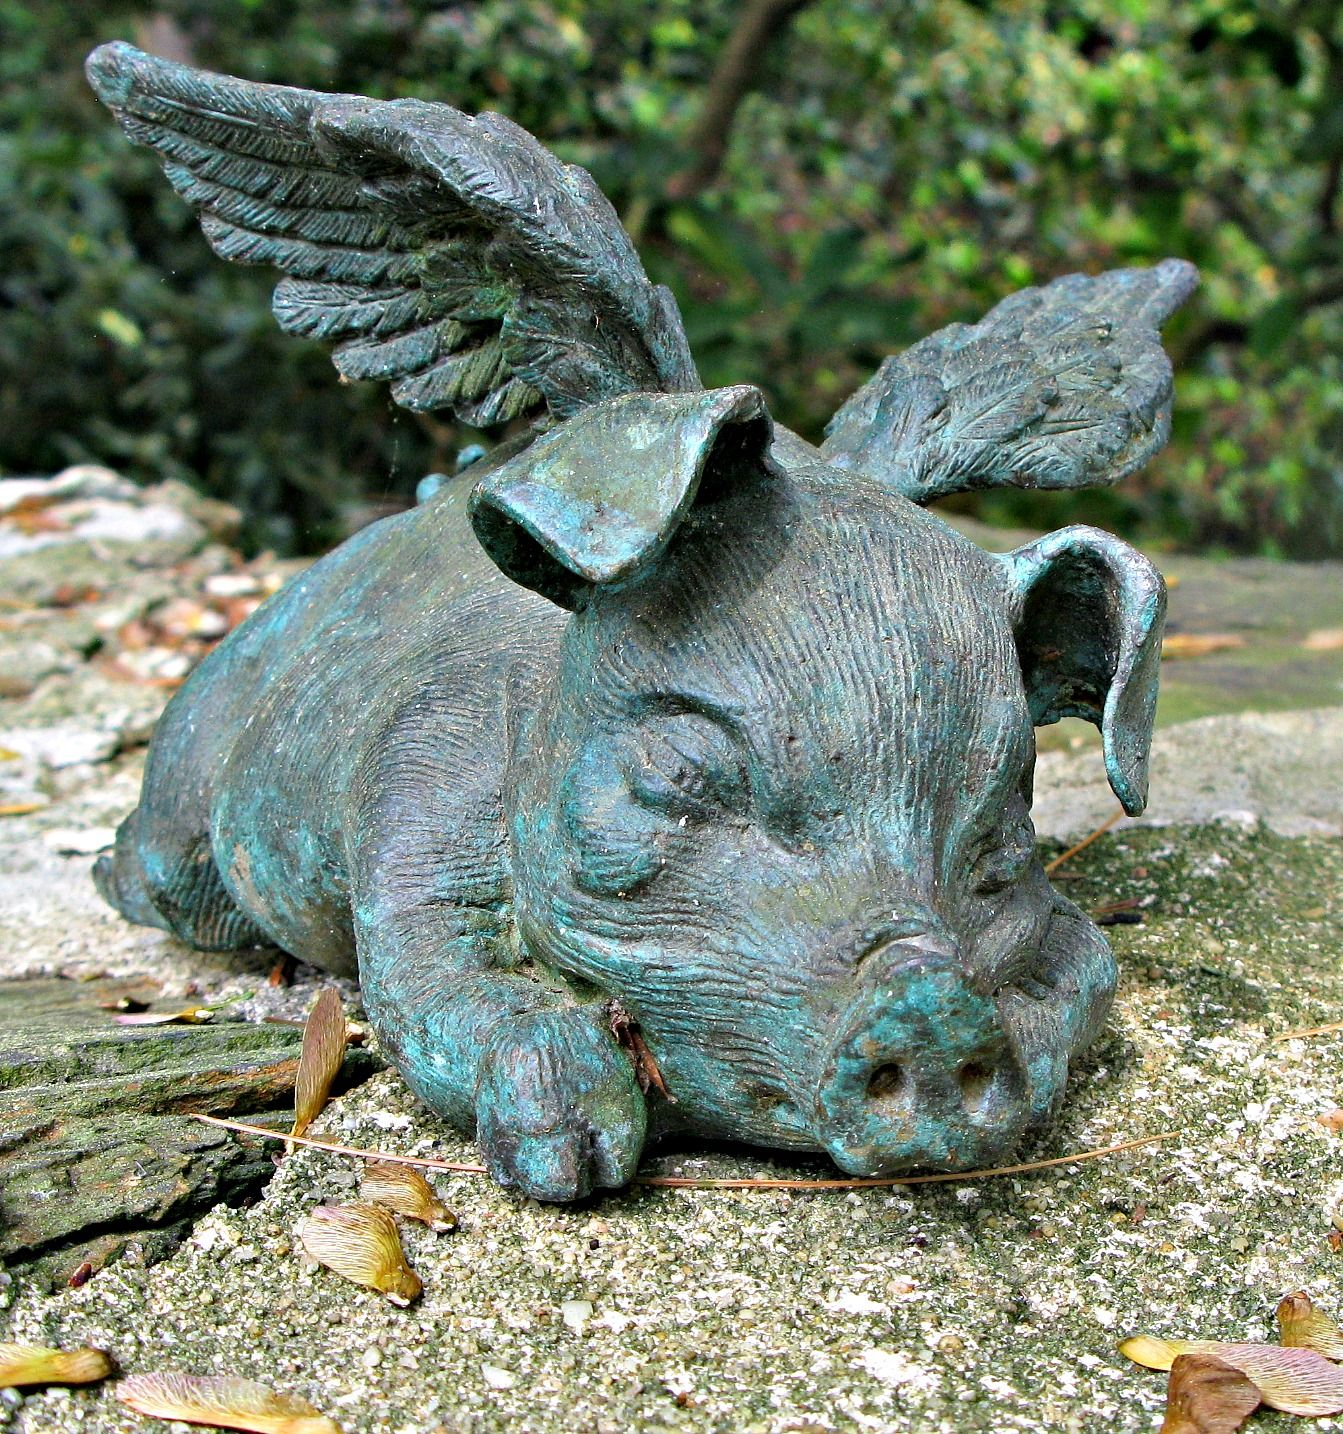 Every Garden Needs At Least One Flying Pig.